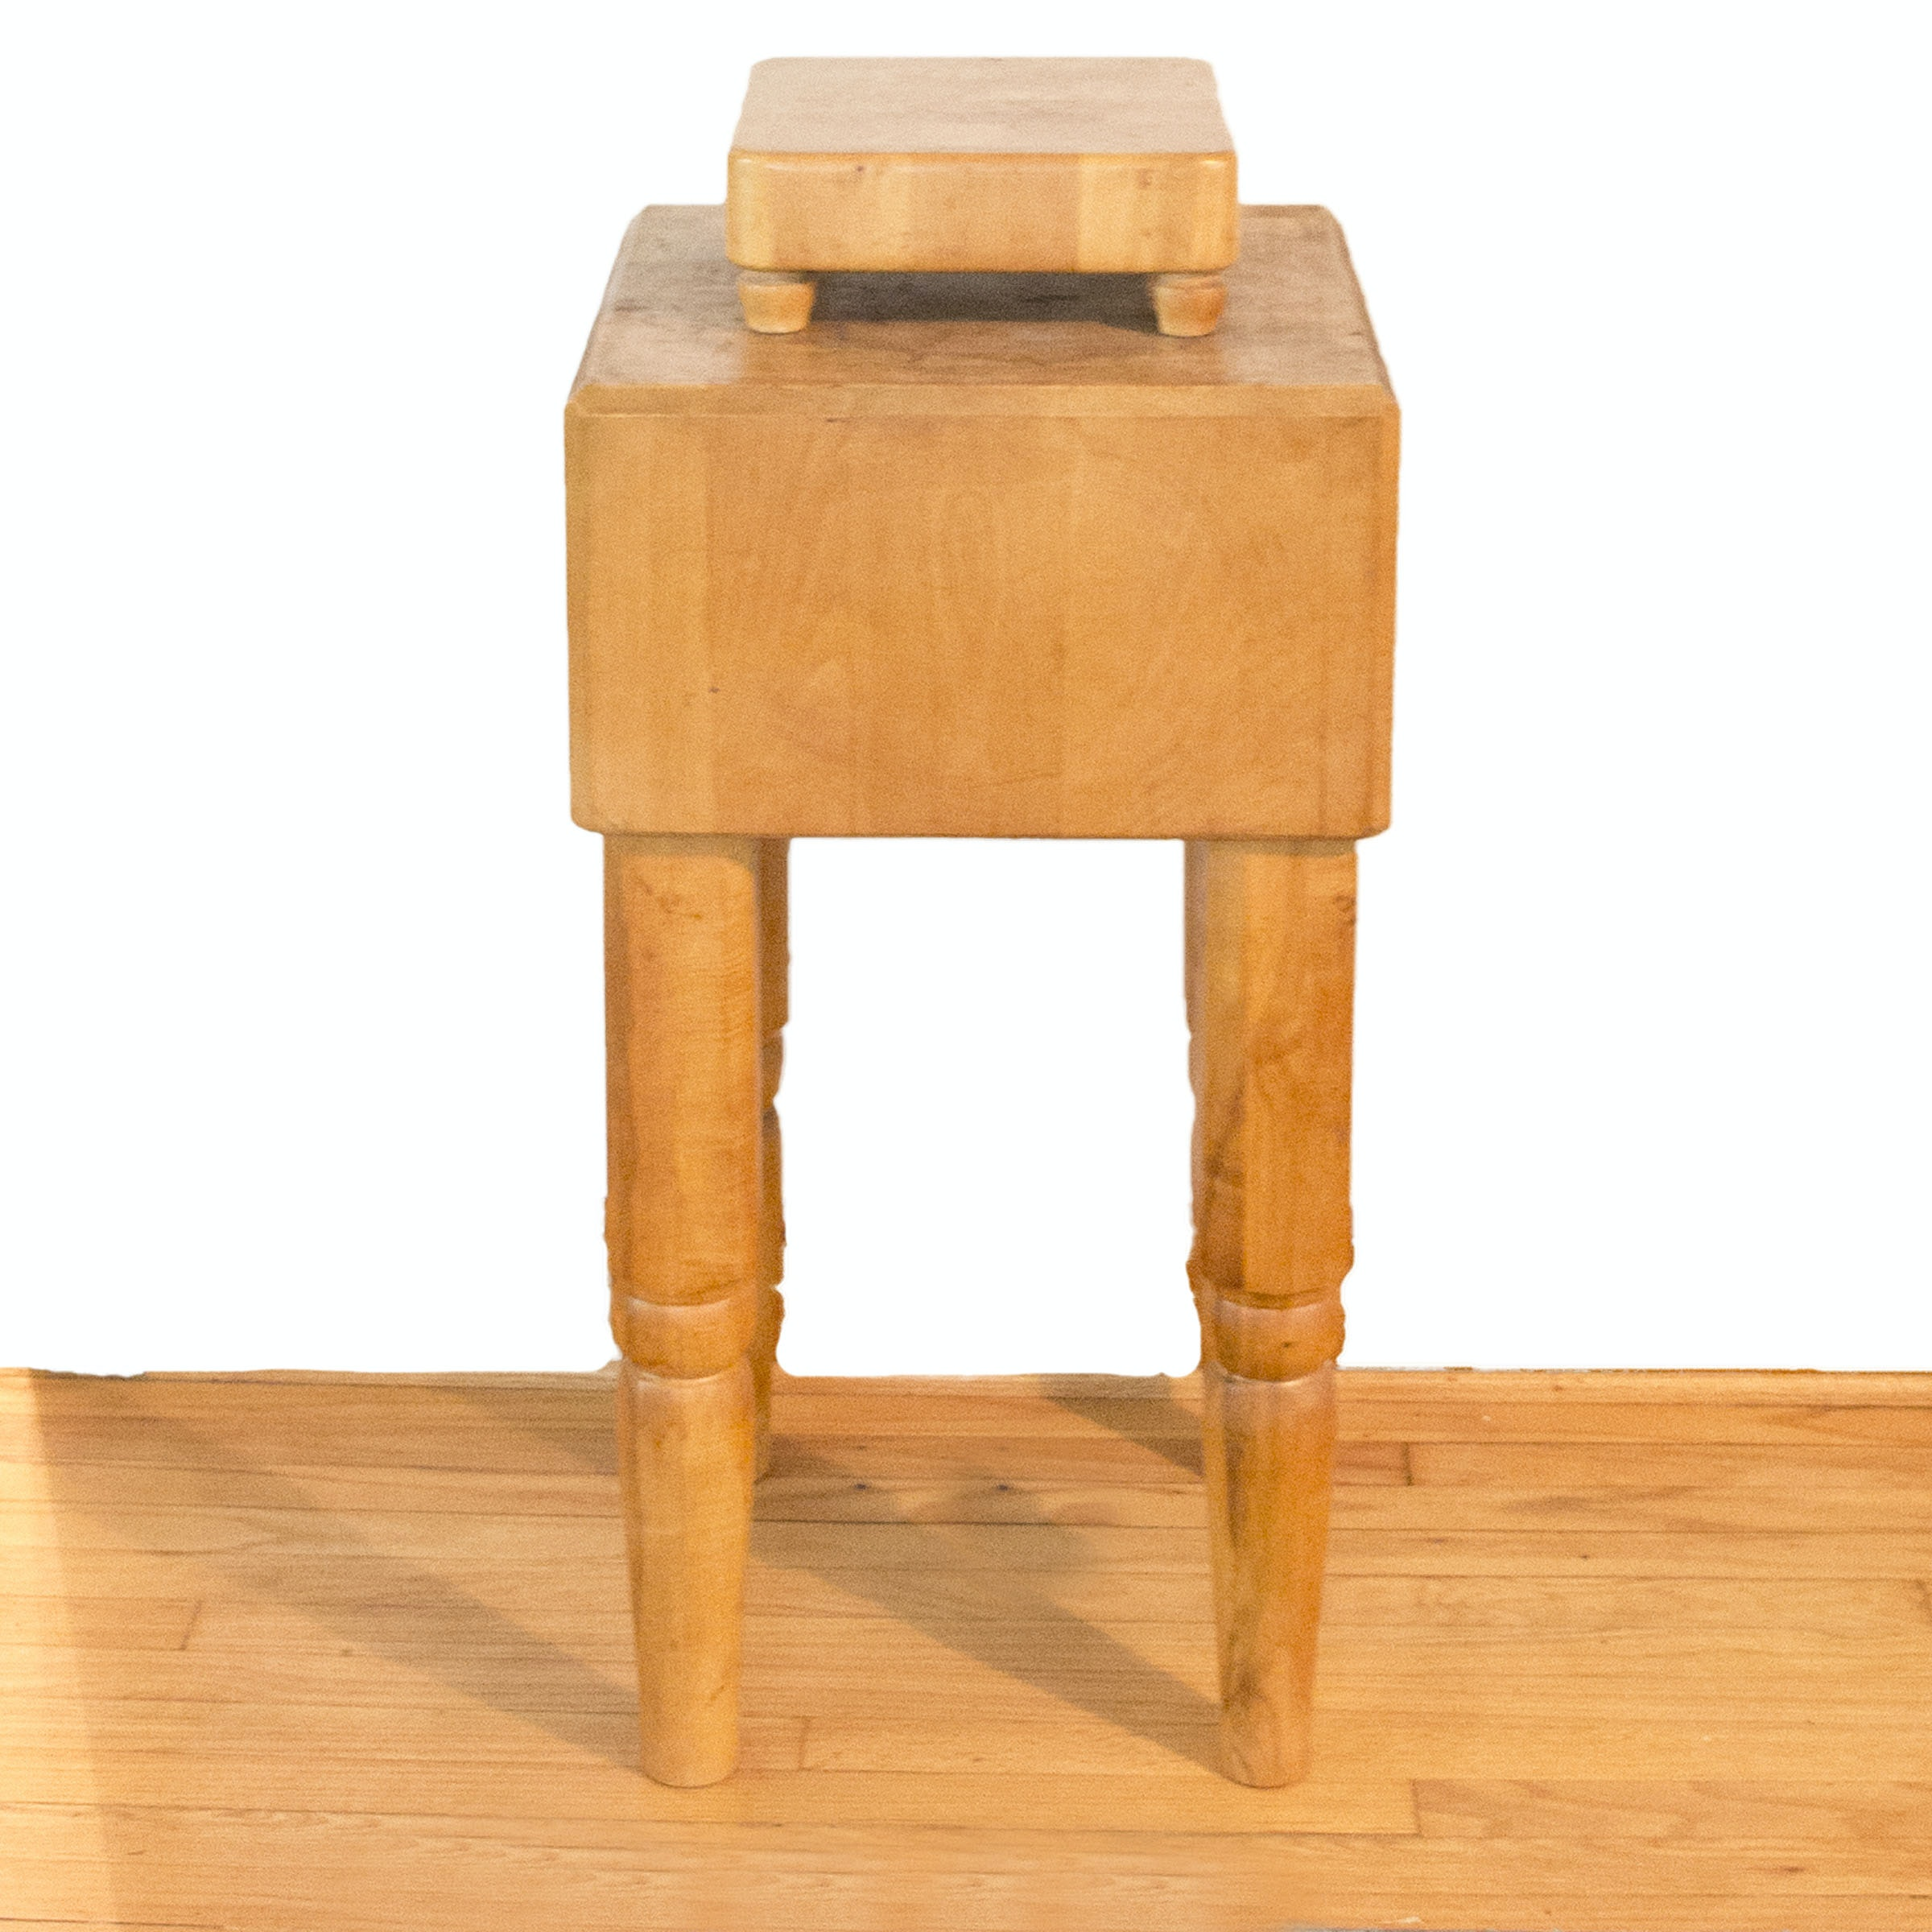 Butcher Block Table with Cutting Board